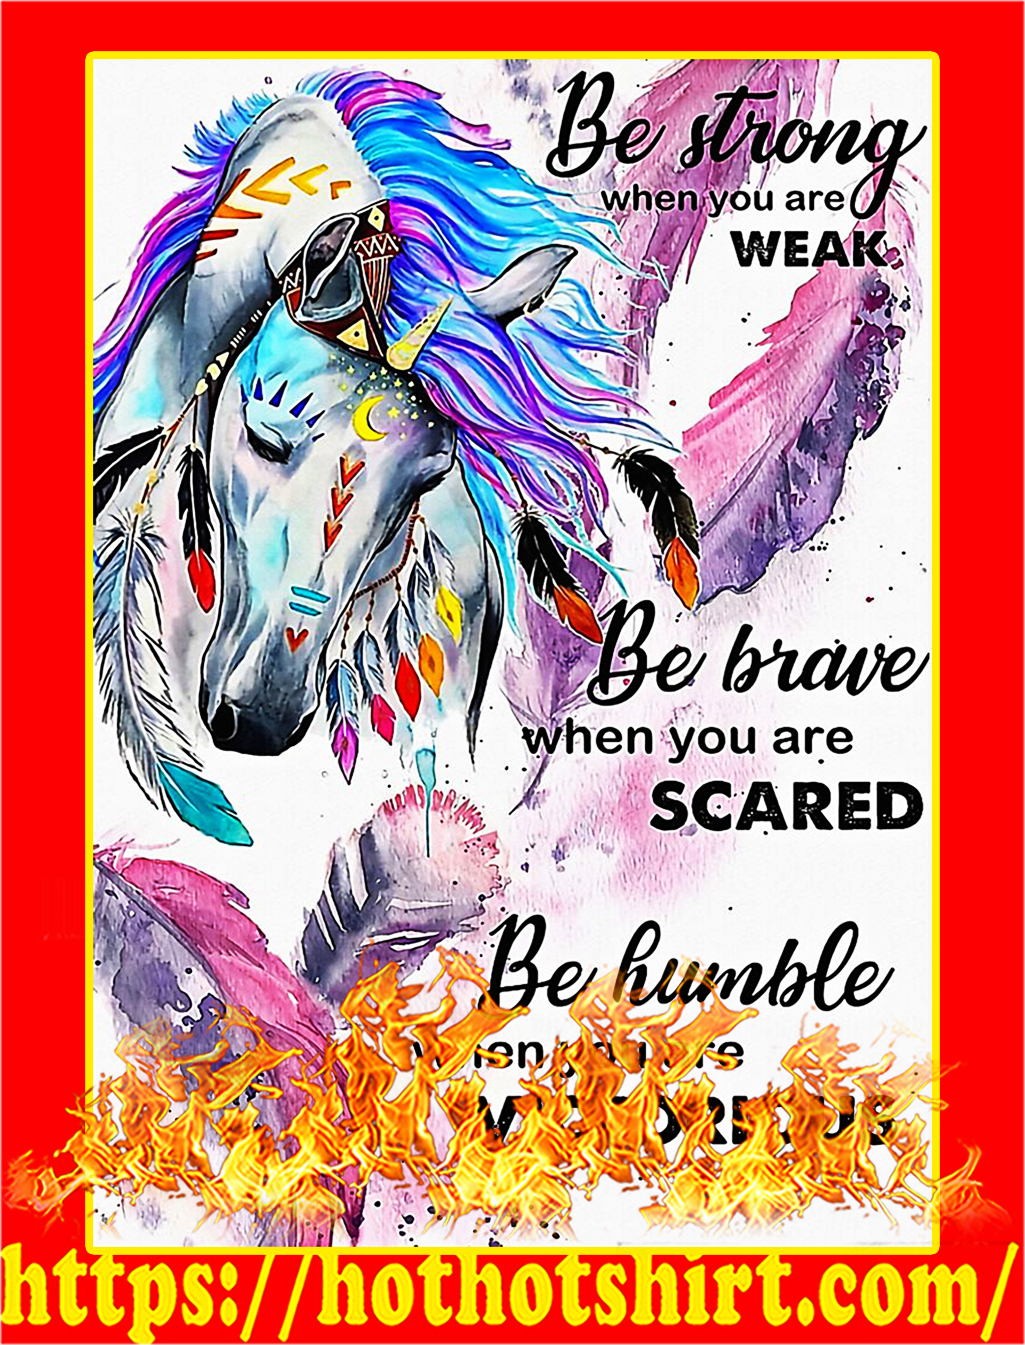 Horse girl be strong when you are weak poster - A2